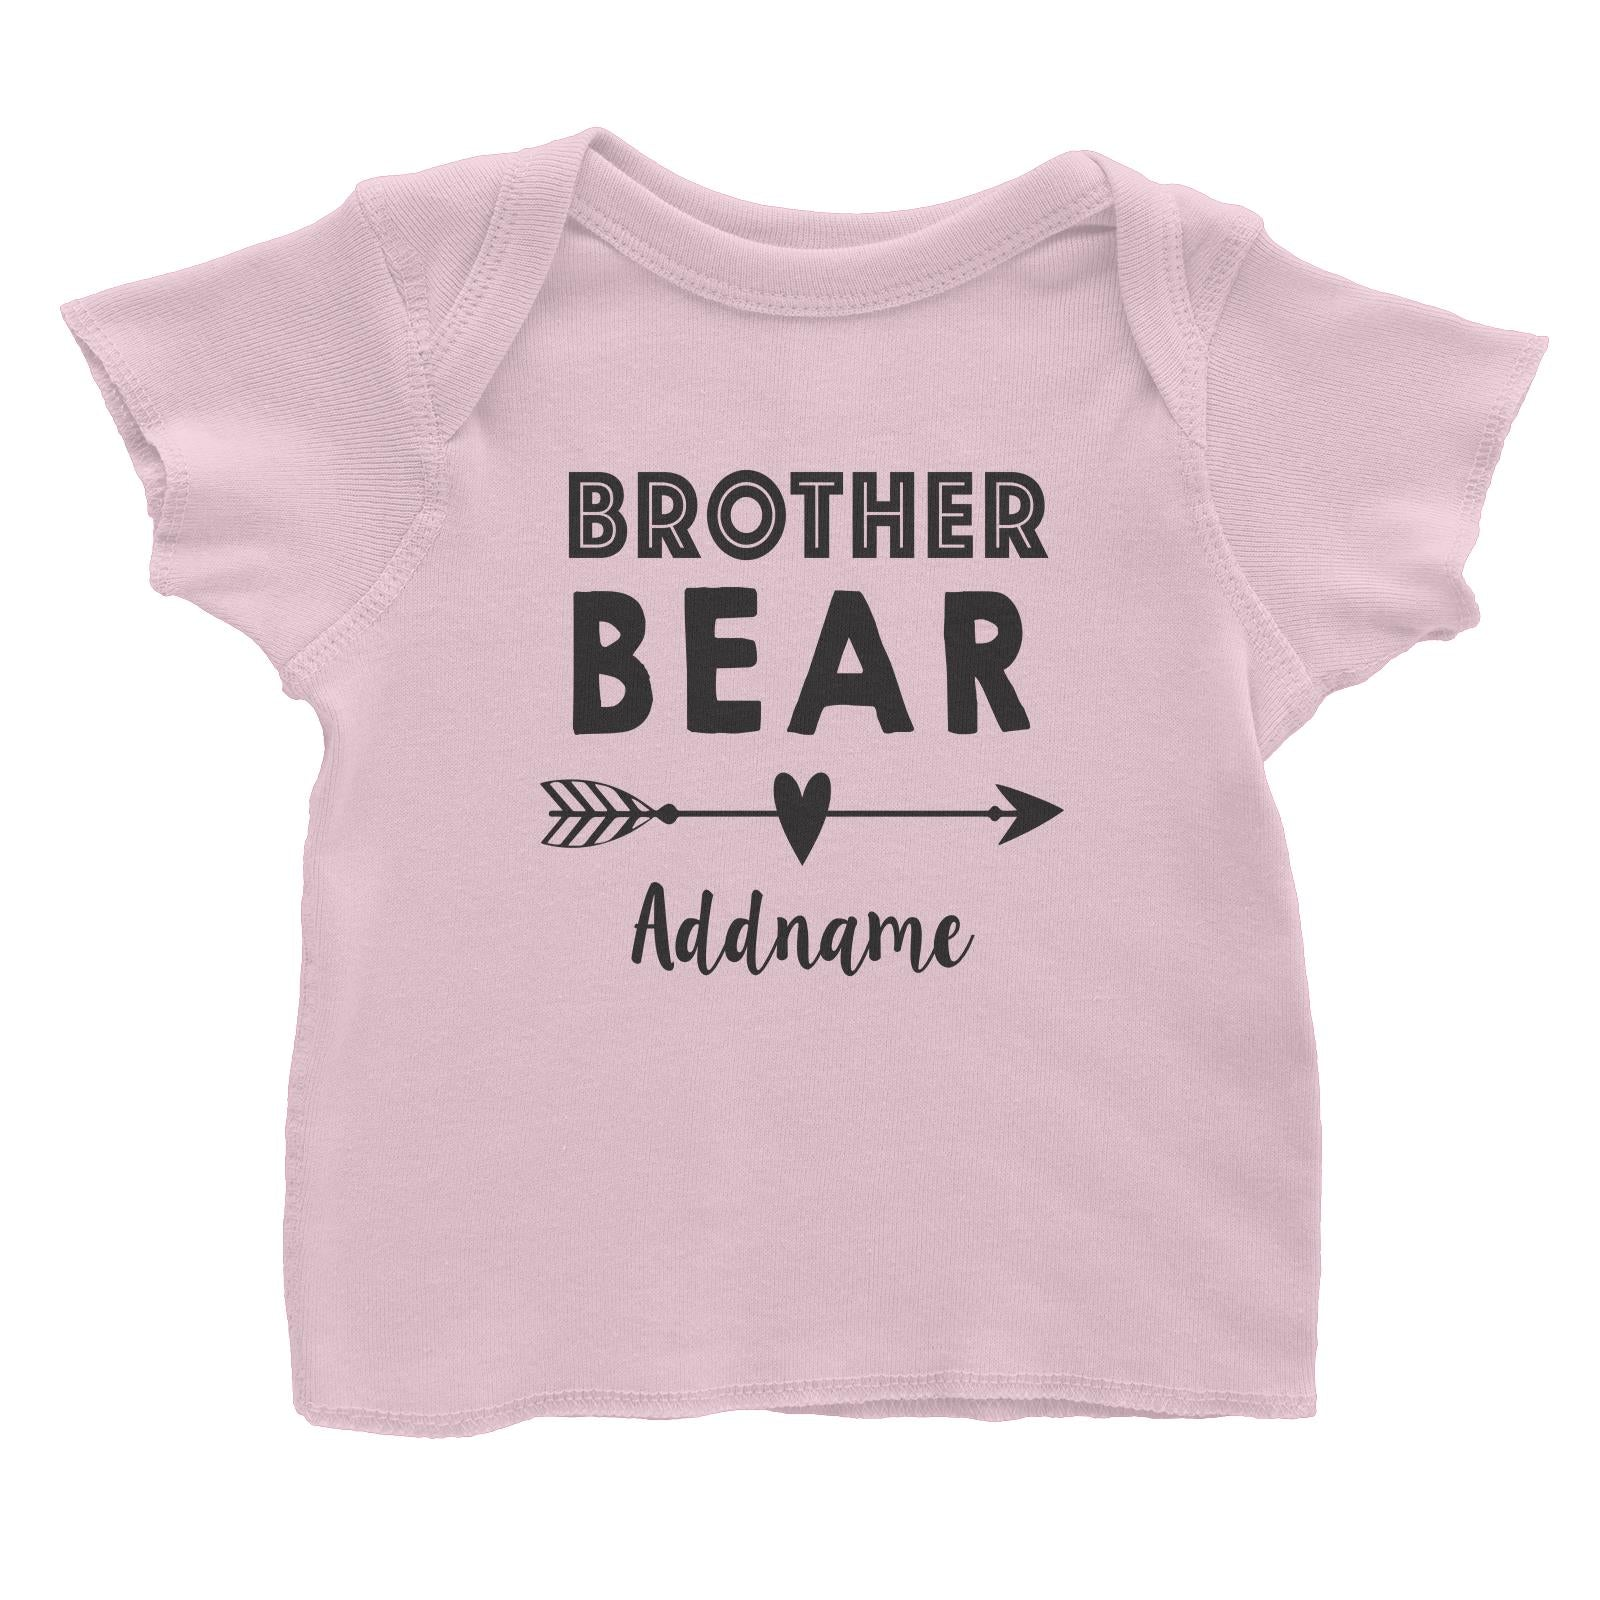 Brother Bear Addname Baby T-Shirt  Matching Family Personalizable Designs